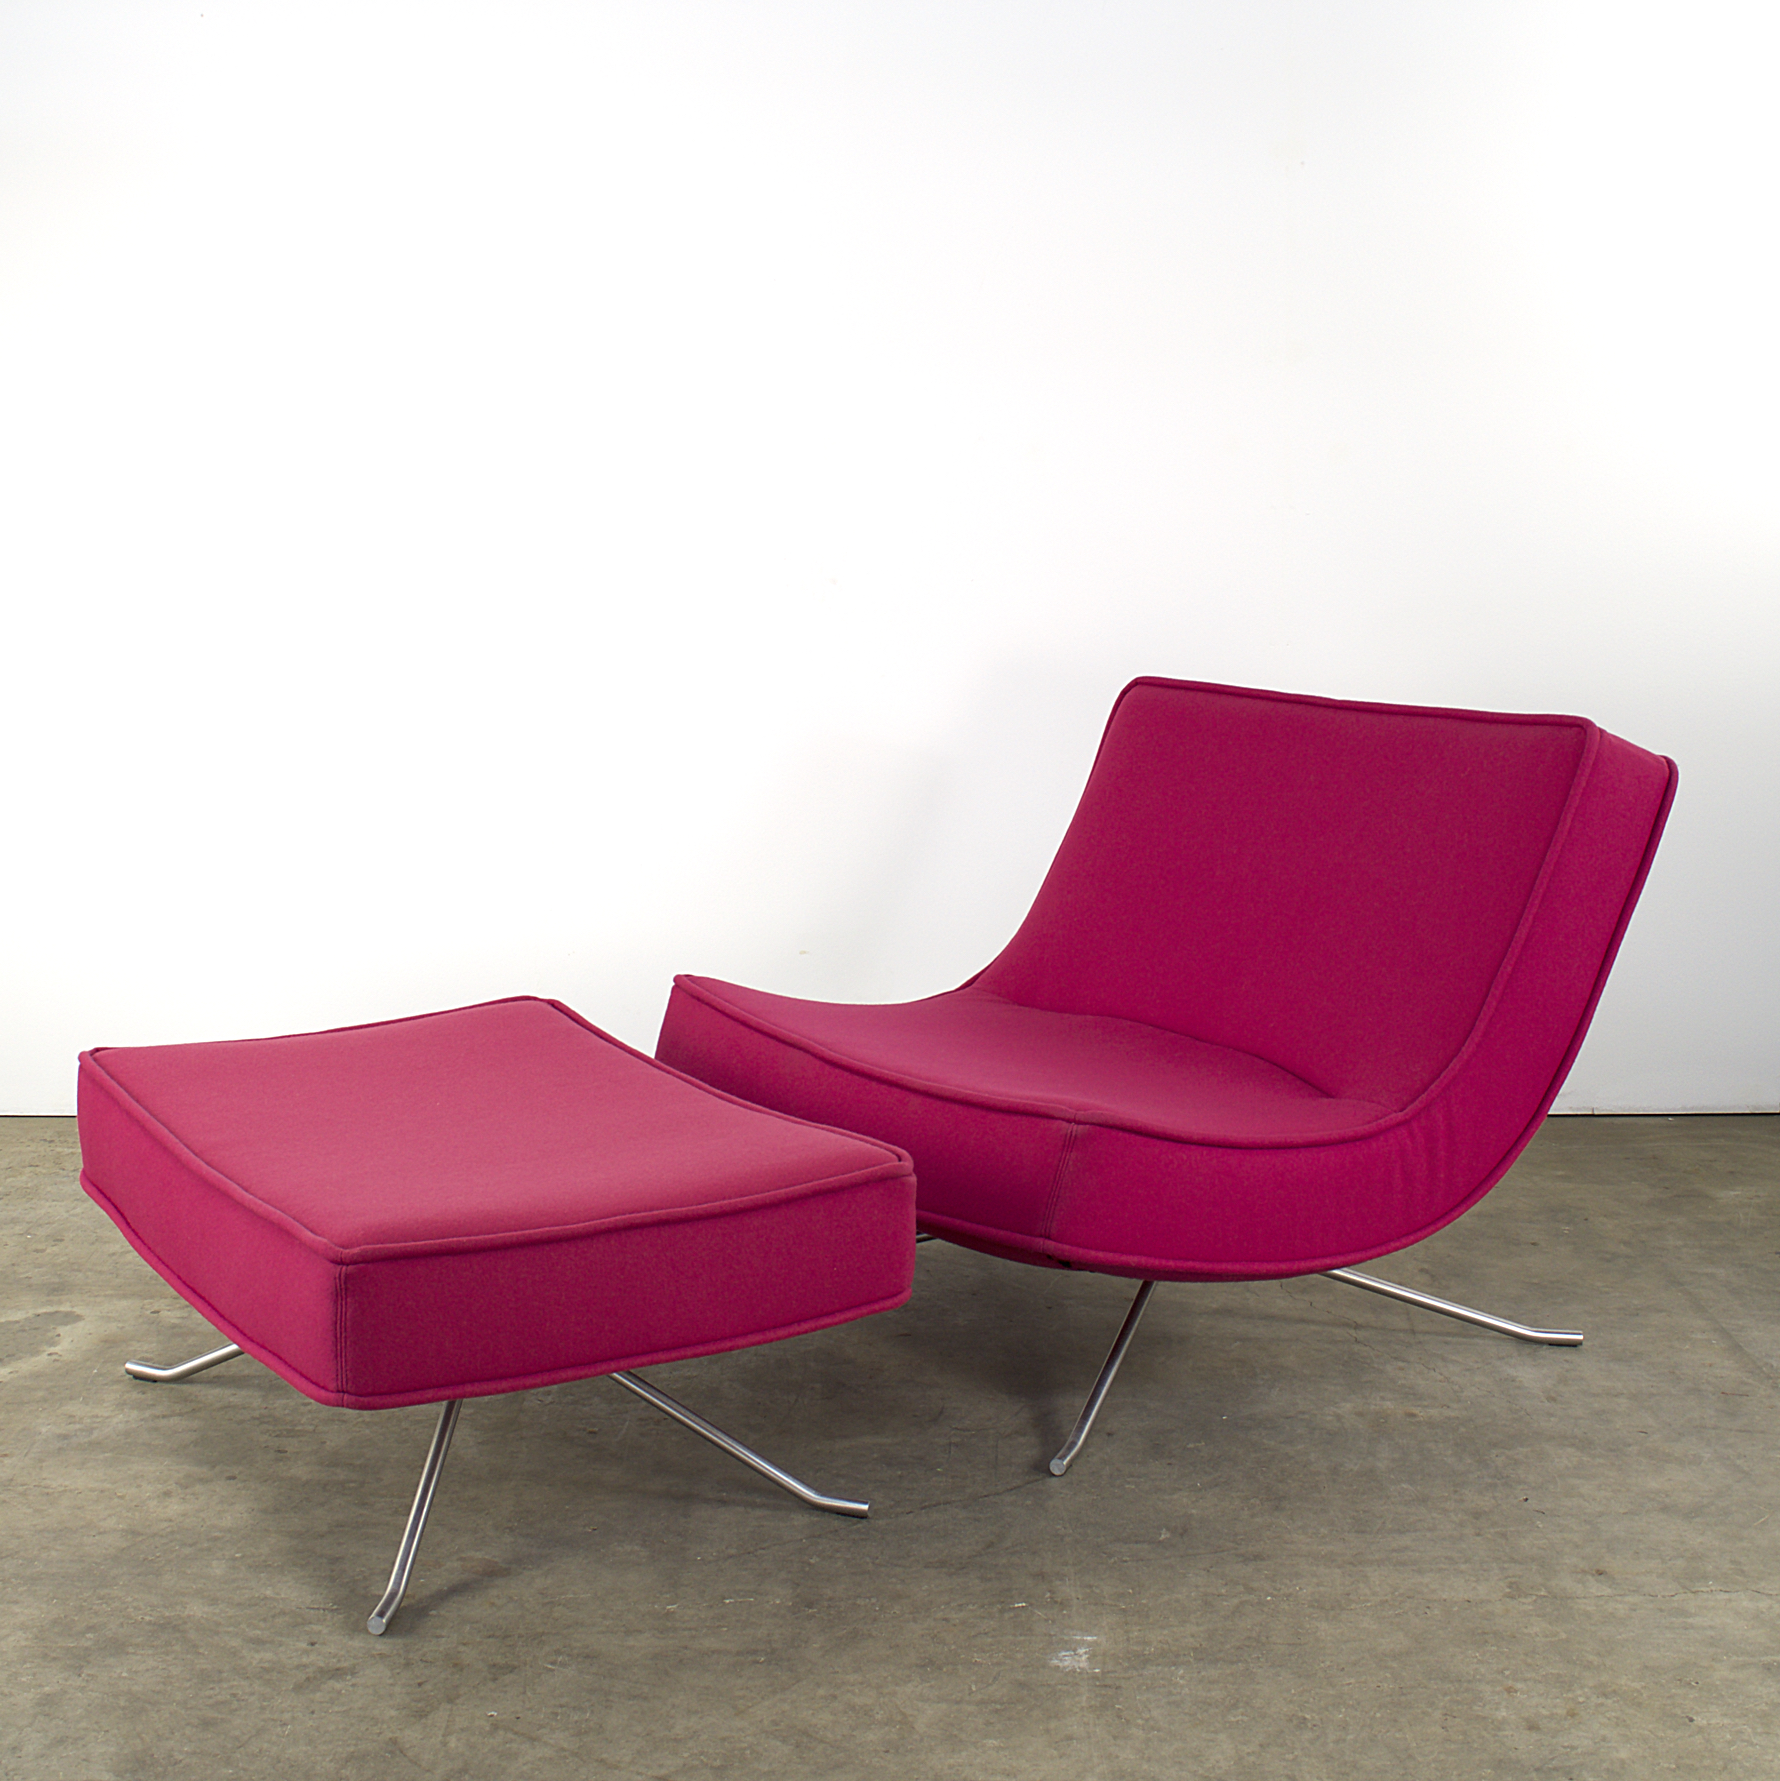 Ligne roset pop easy lounge chair hocker by christian for Lounge chair kopie